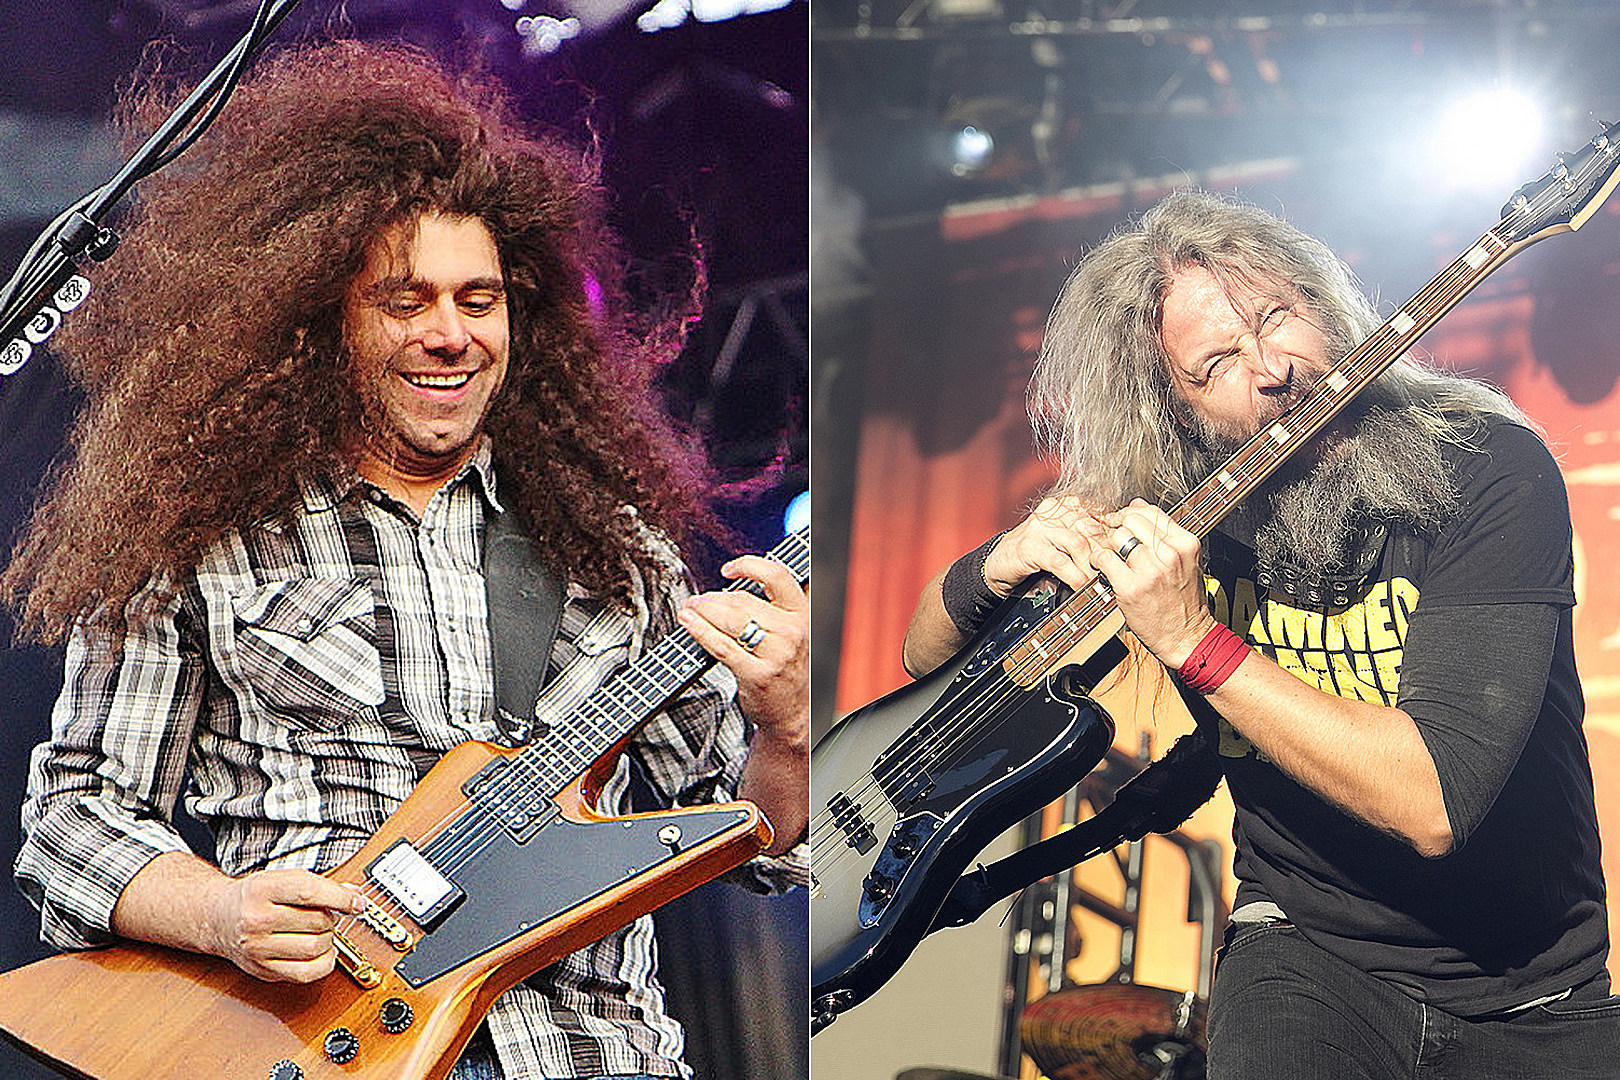 Coheed and Cambria Announce Tour With Mastodon + Every Time